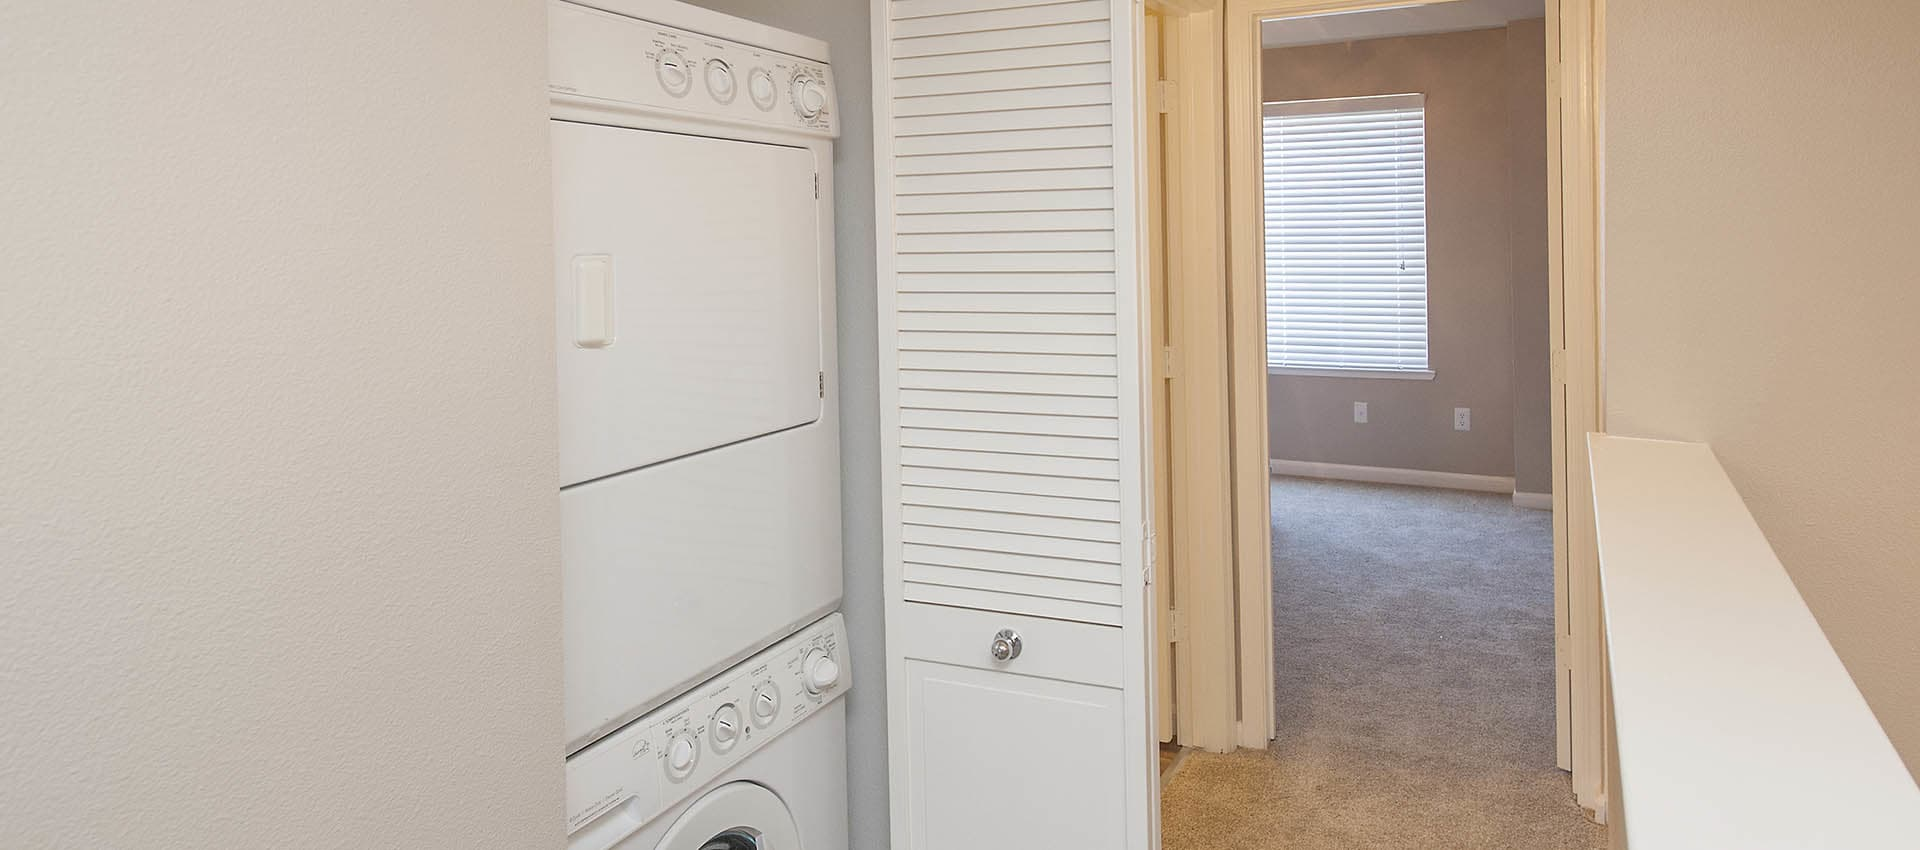 Washer And Dryer at Azure Apartment Homes in Petaluma, California